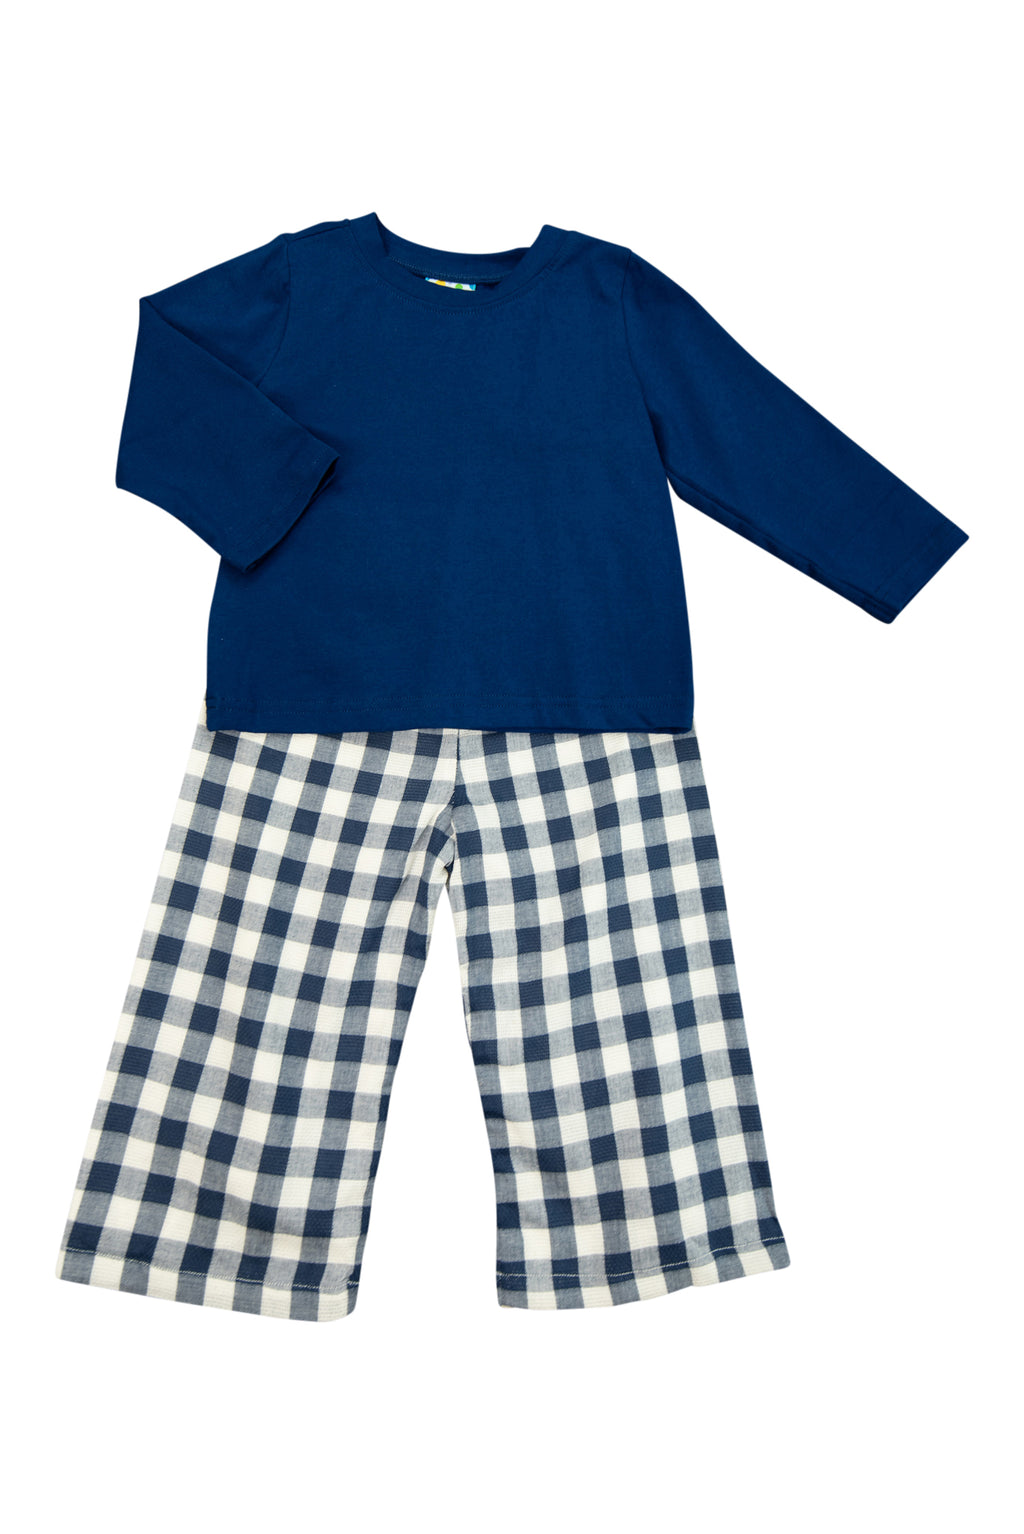 Boys Navy Linen Pants Set